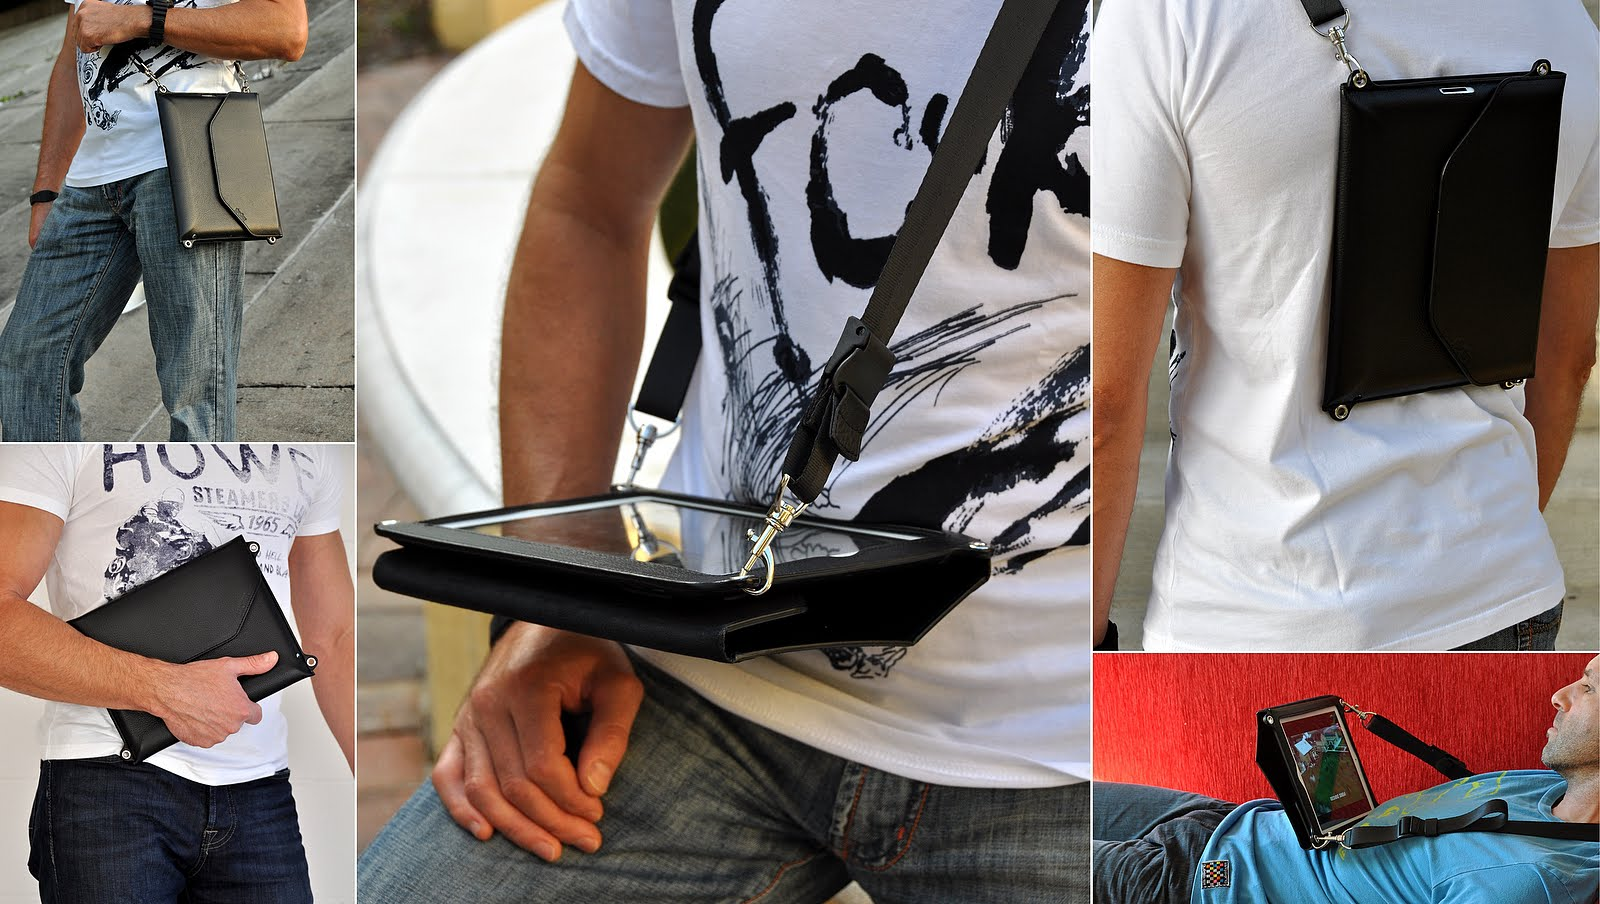 Hands Free Ipad Carrying Cases And Bags Designed To Work